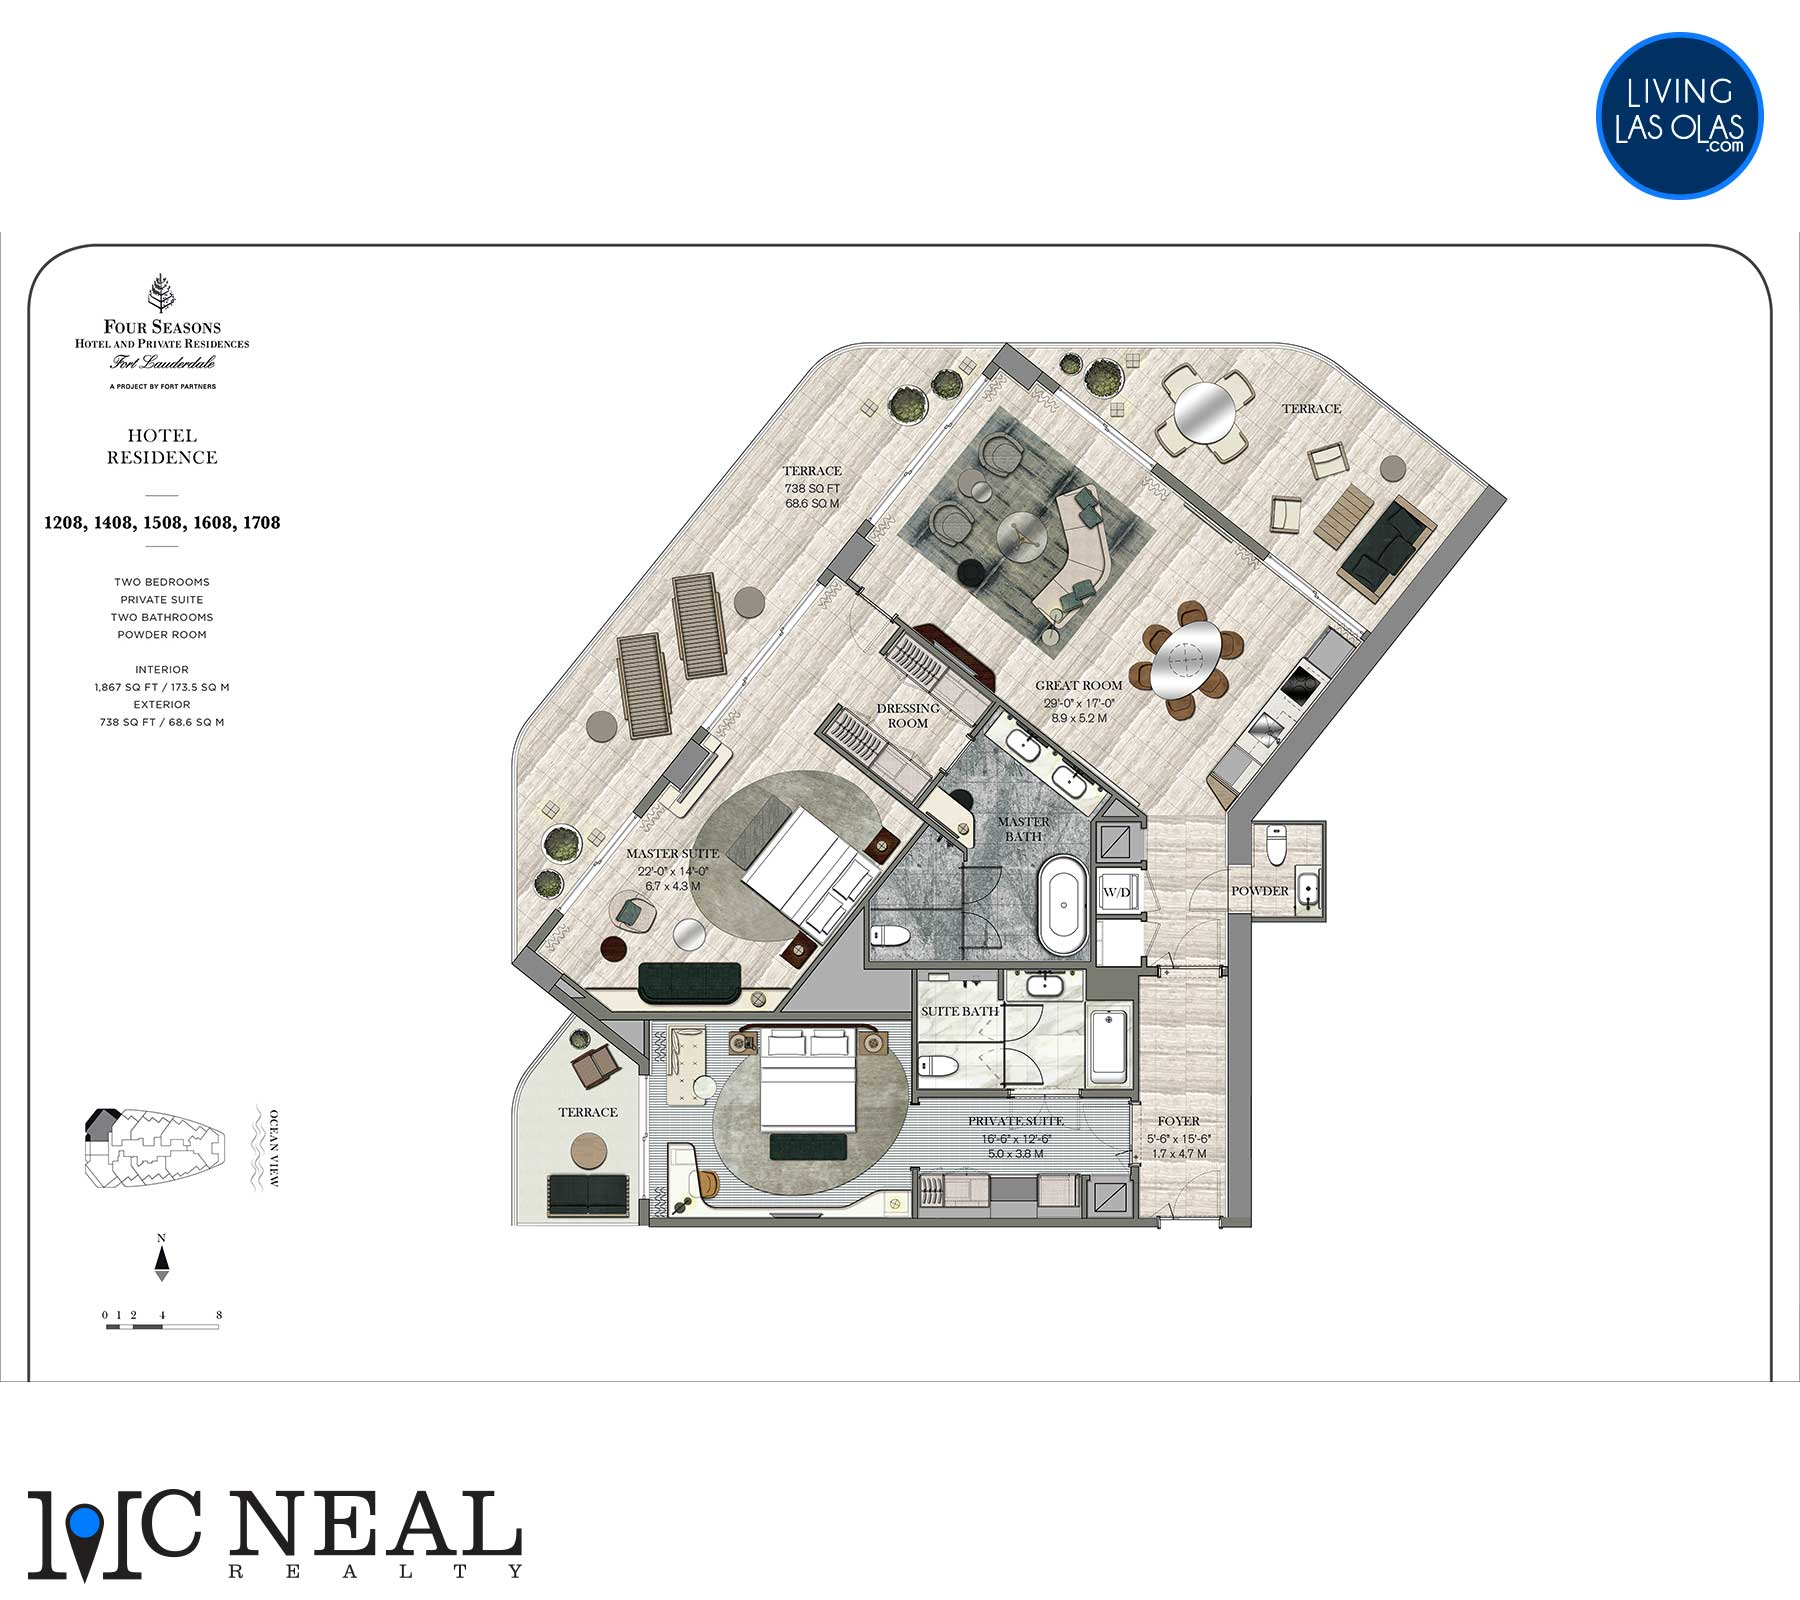 Four Seasons Hotel Residences Floor Plan 1208-1708